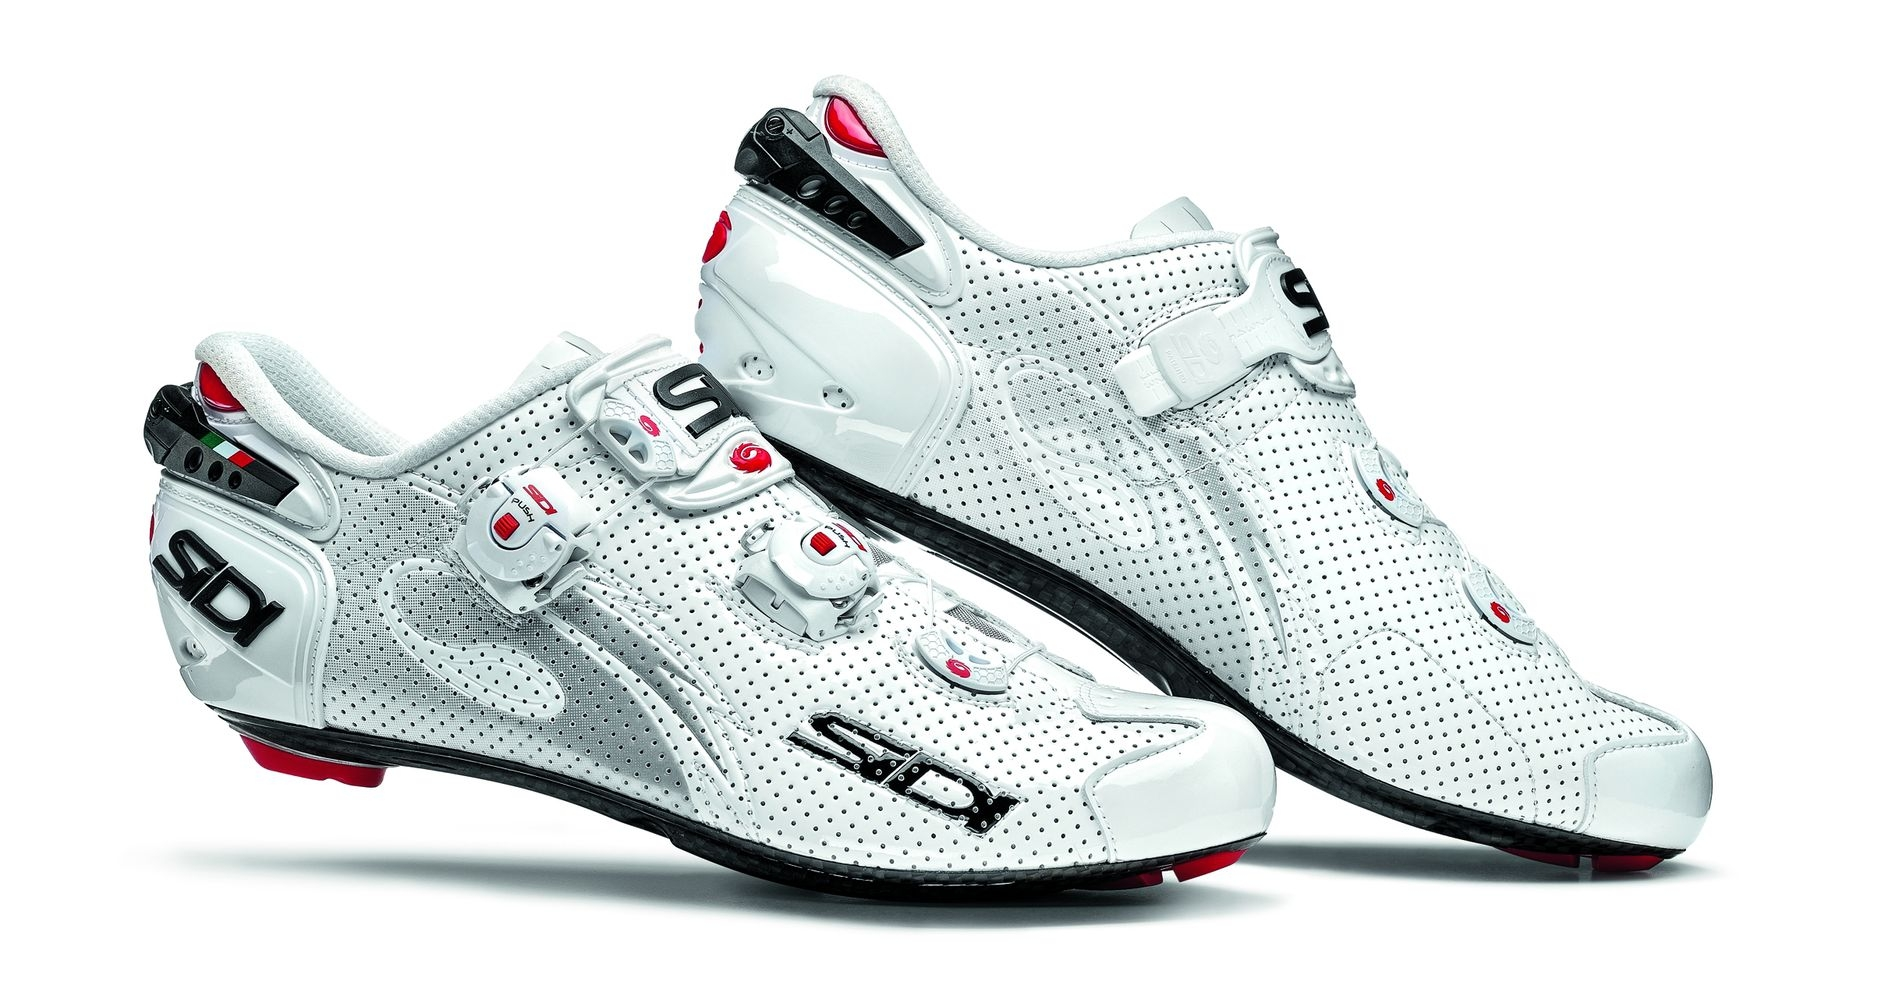 Chaussures Sidi WIRE Carbon AIR Vernice Blanc verni - 45